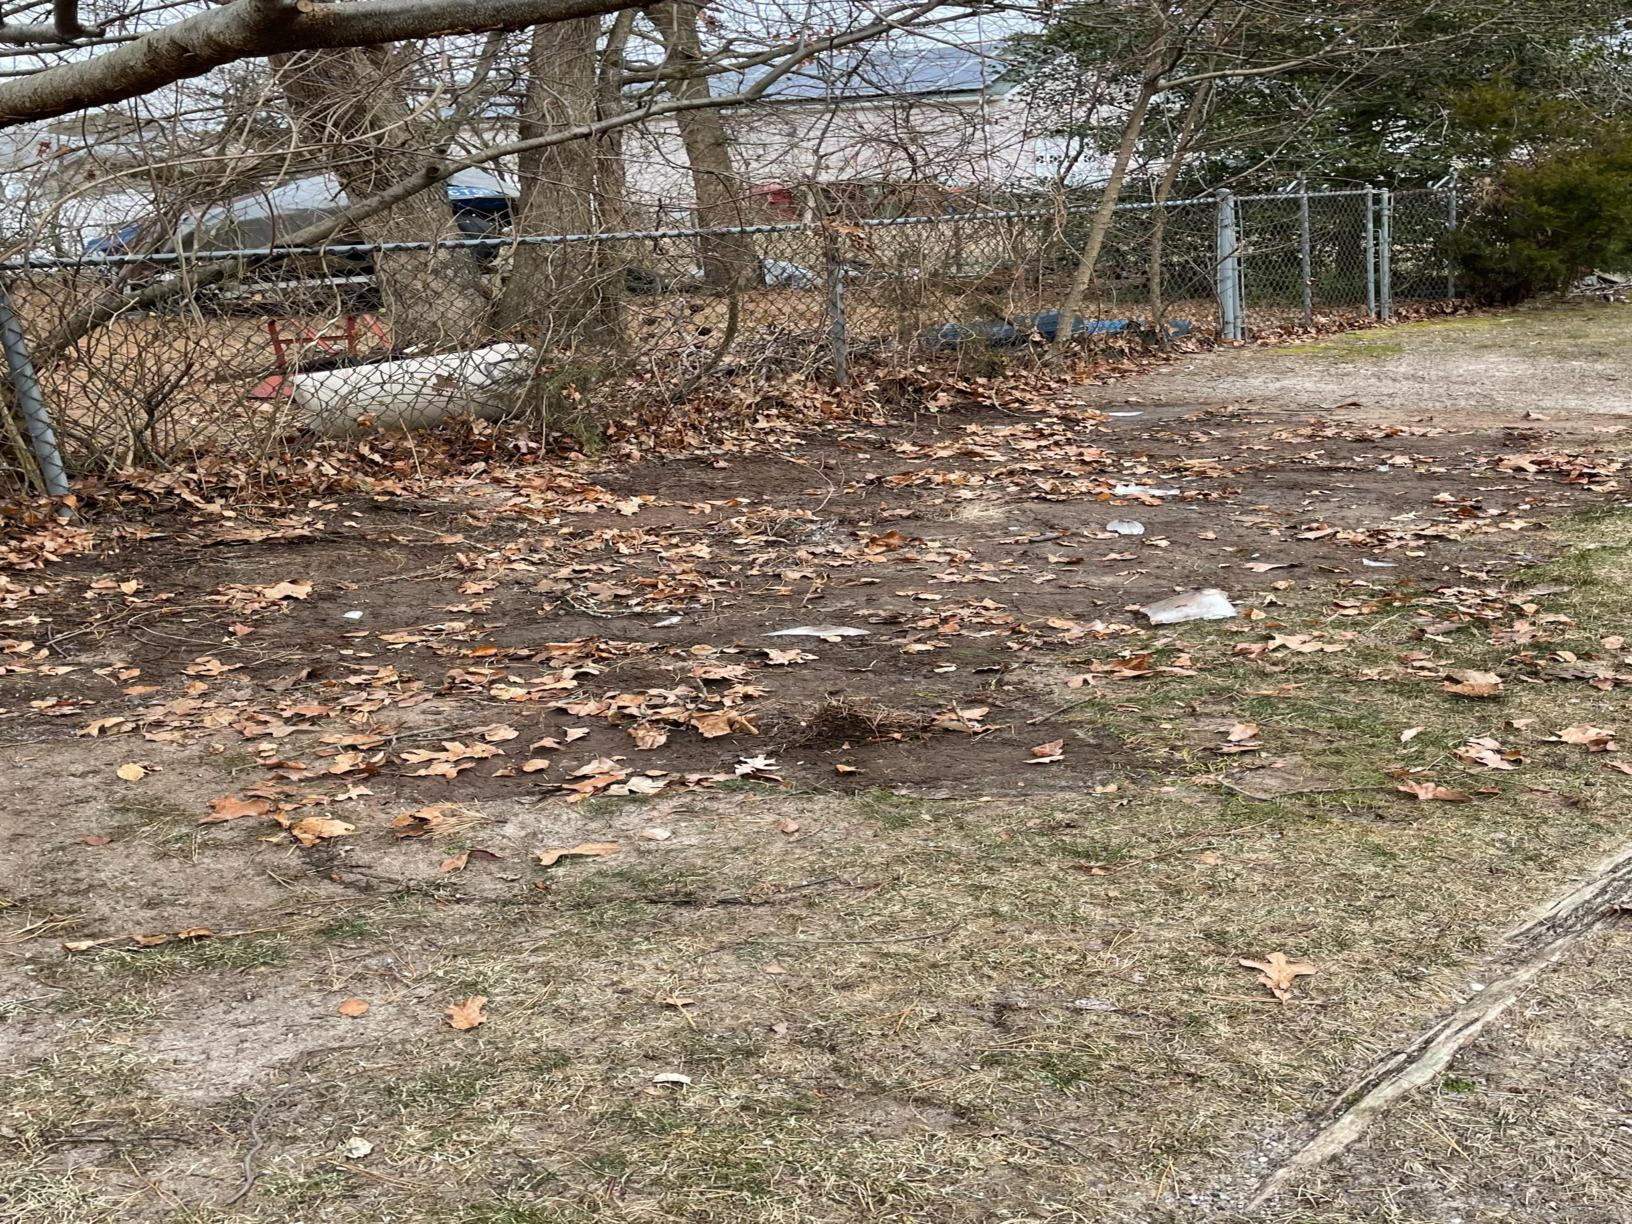 Bayville, NJ 08721 Yard Debris Clear Out - After Photo